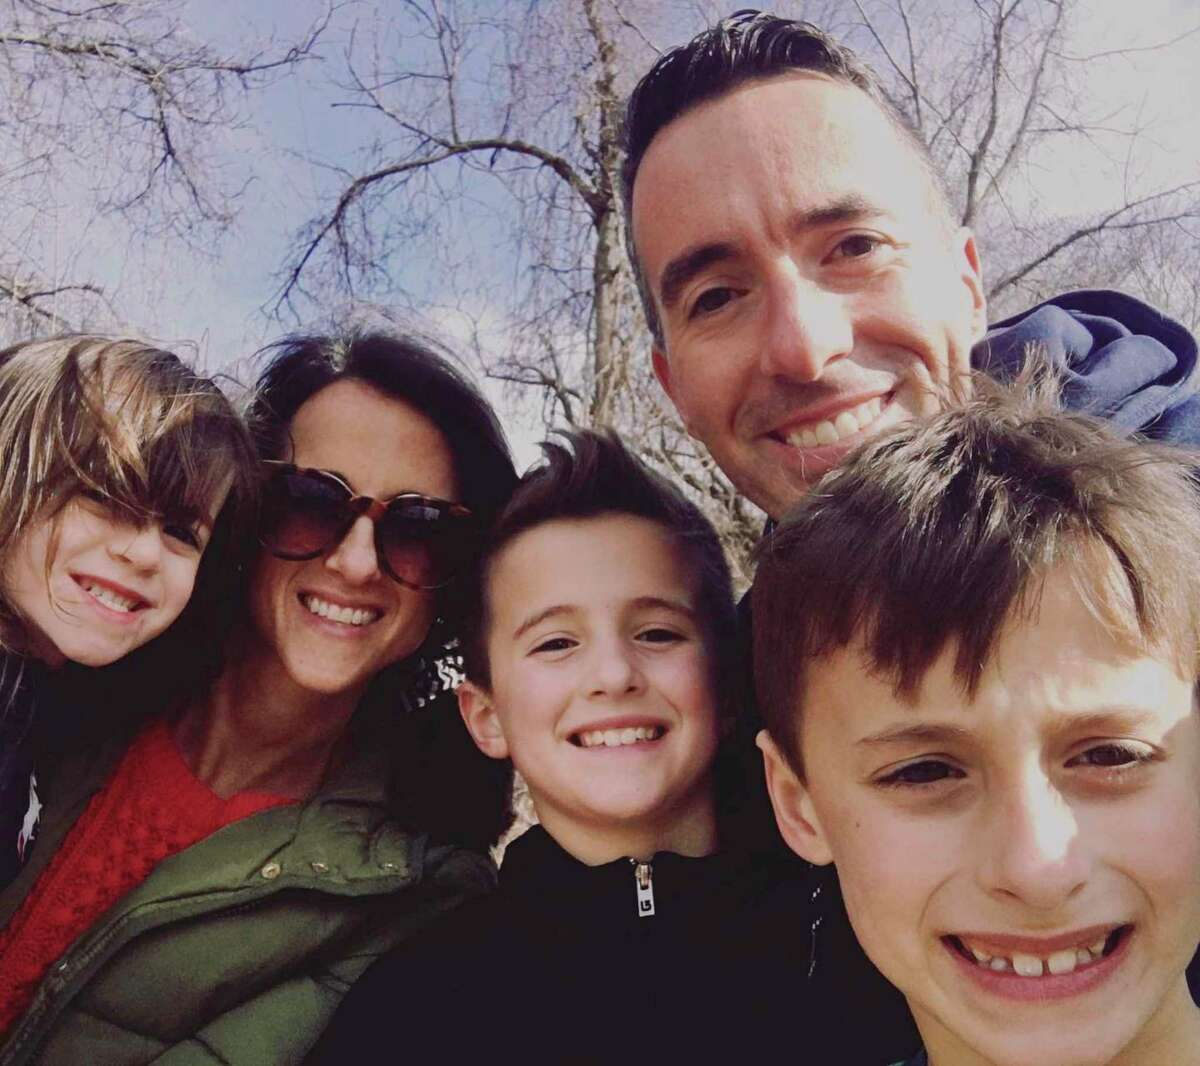 The Naddeo family, of Bethel, goes for a hike on Sunday in Tarrywile Park in Danbury. From left to right: Ava Naddeo, Diana Naddeo, Russell Naddeo, James Naddeo and Dylan Naddeo.